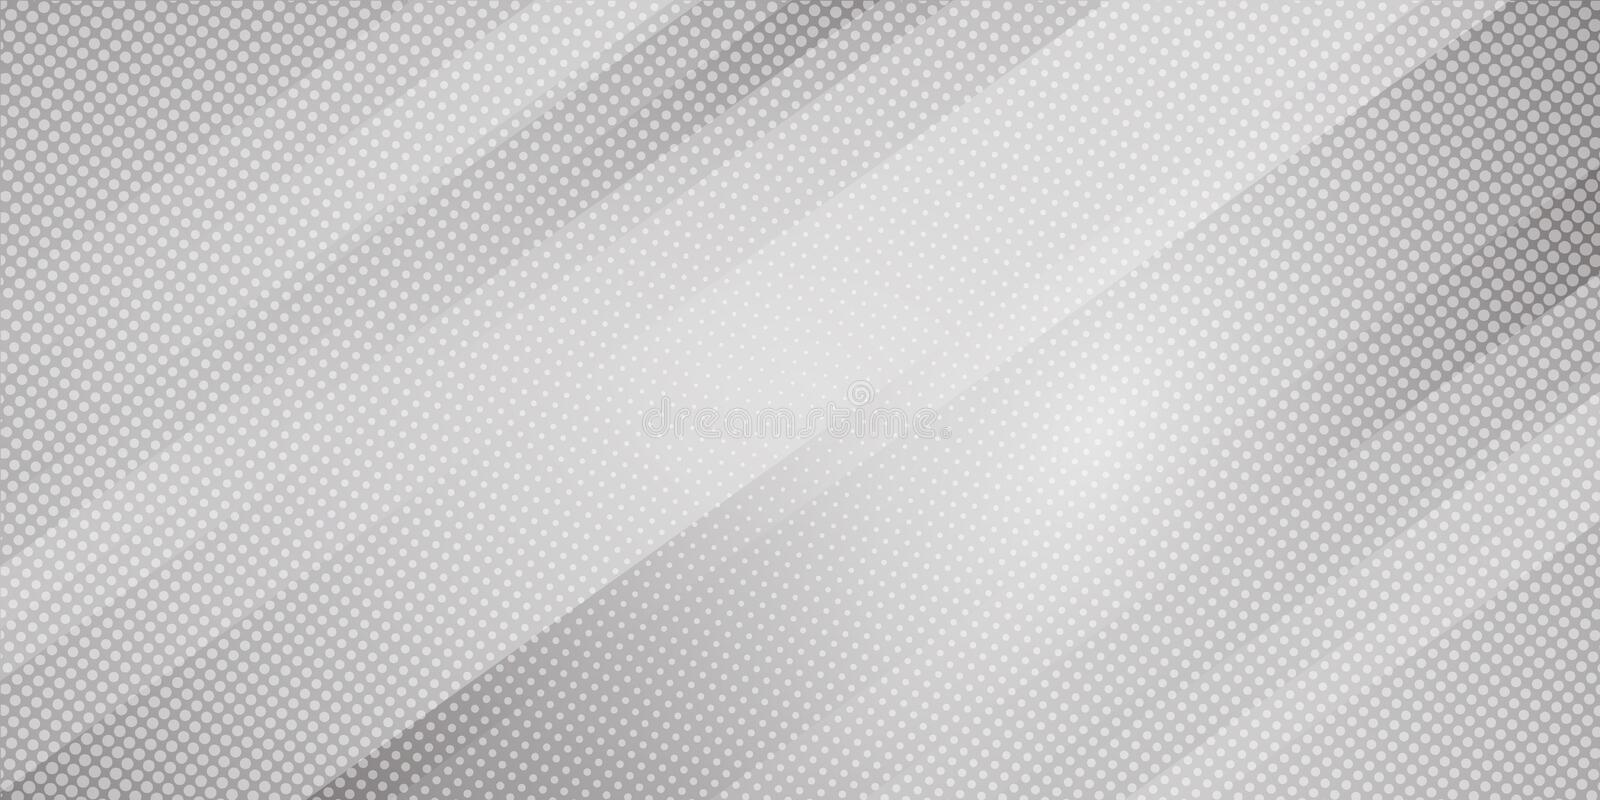 Abstract gray and white gradient color oblique lines stripes background and dots texture halftone style. Geometric minimal pattern royalty free illustration